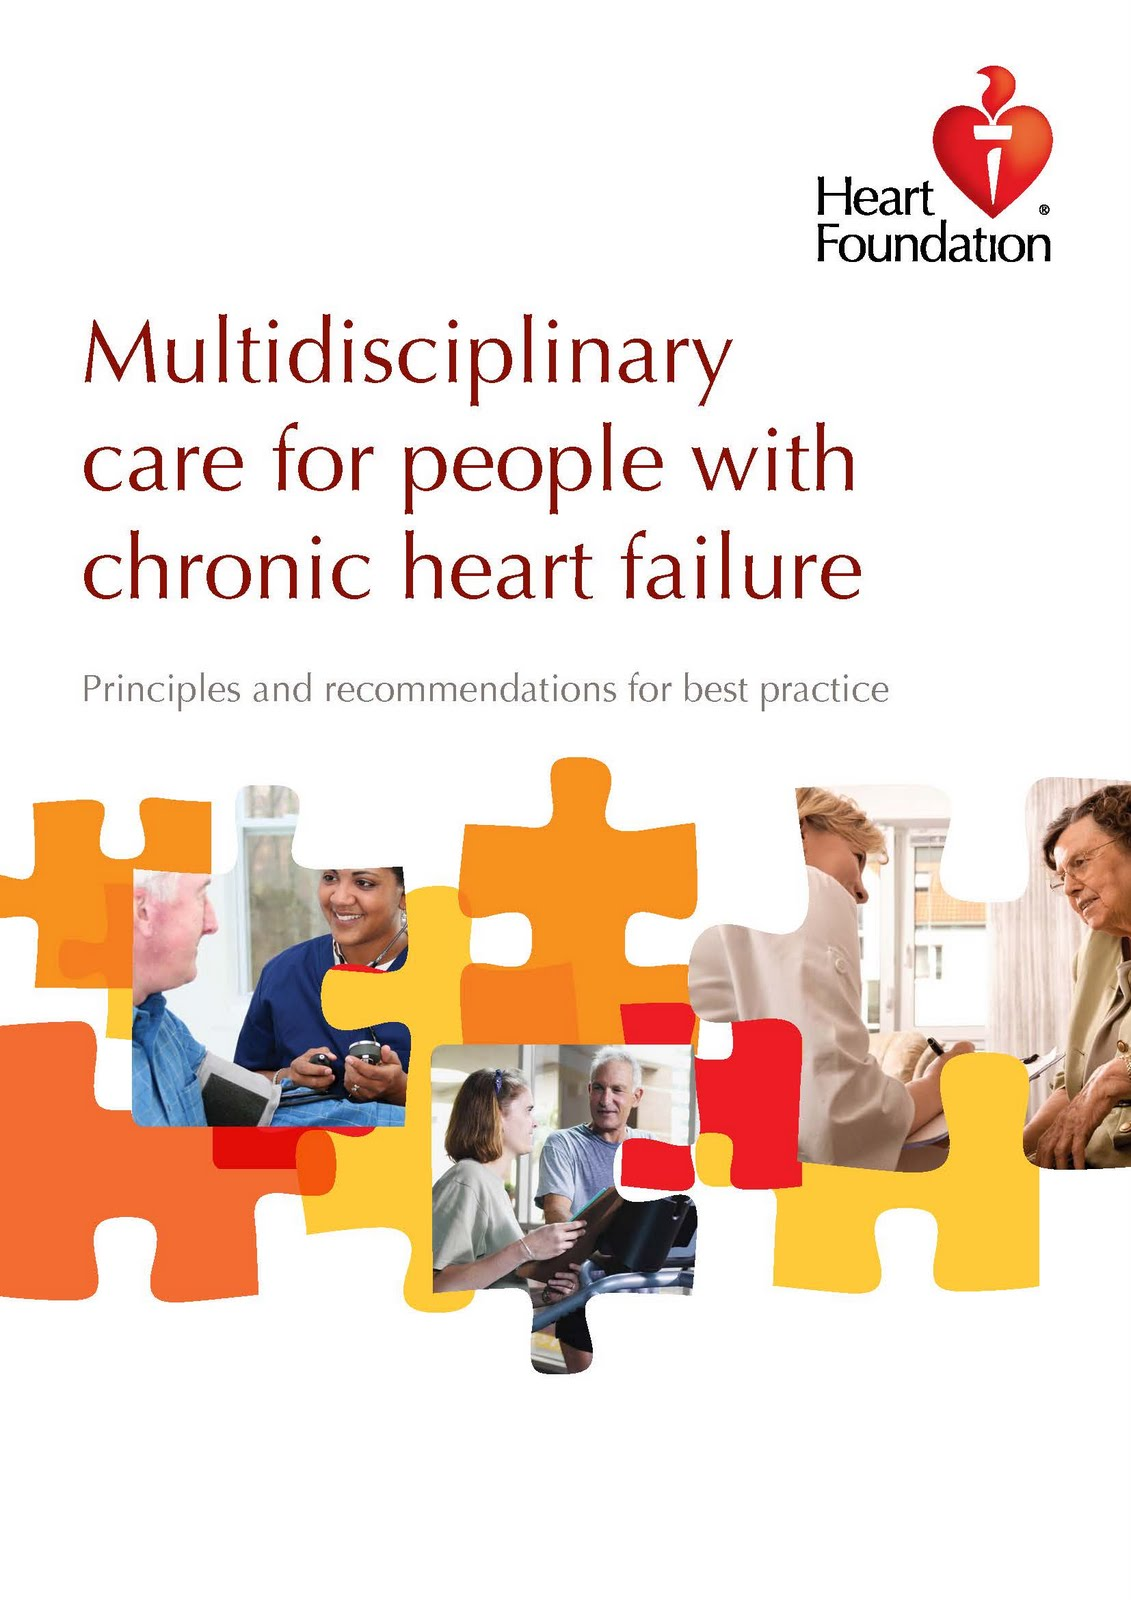 chapter 35 nursing management heart failure Chapter meetings live jessup m, bozkurt b et al 2013 accf/aha guideline for the management of heart failure: a report of the american college of cardiology foundation/american heart et al heart failure management in skilled nursing facilities: a scientific statement from the.